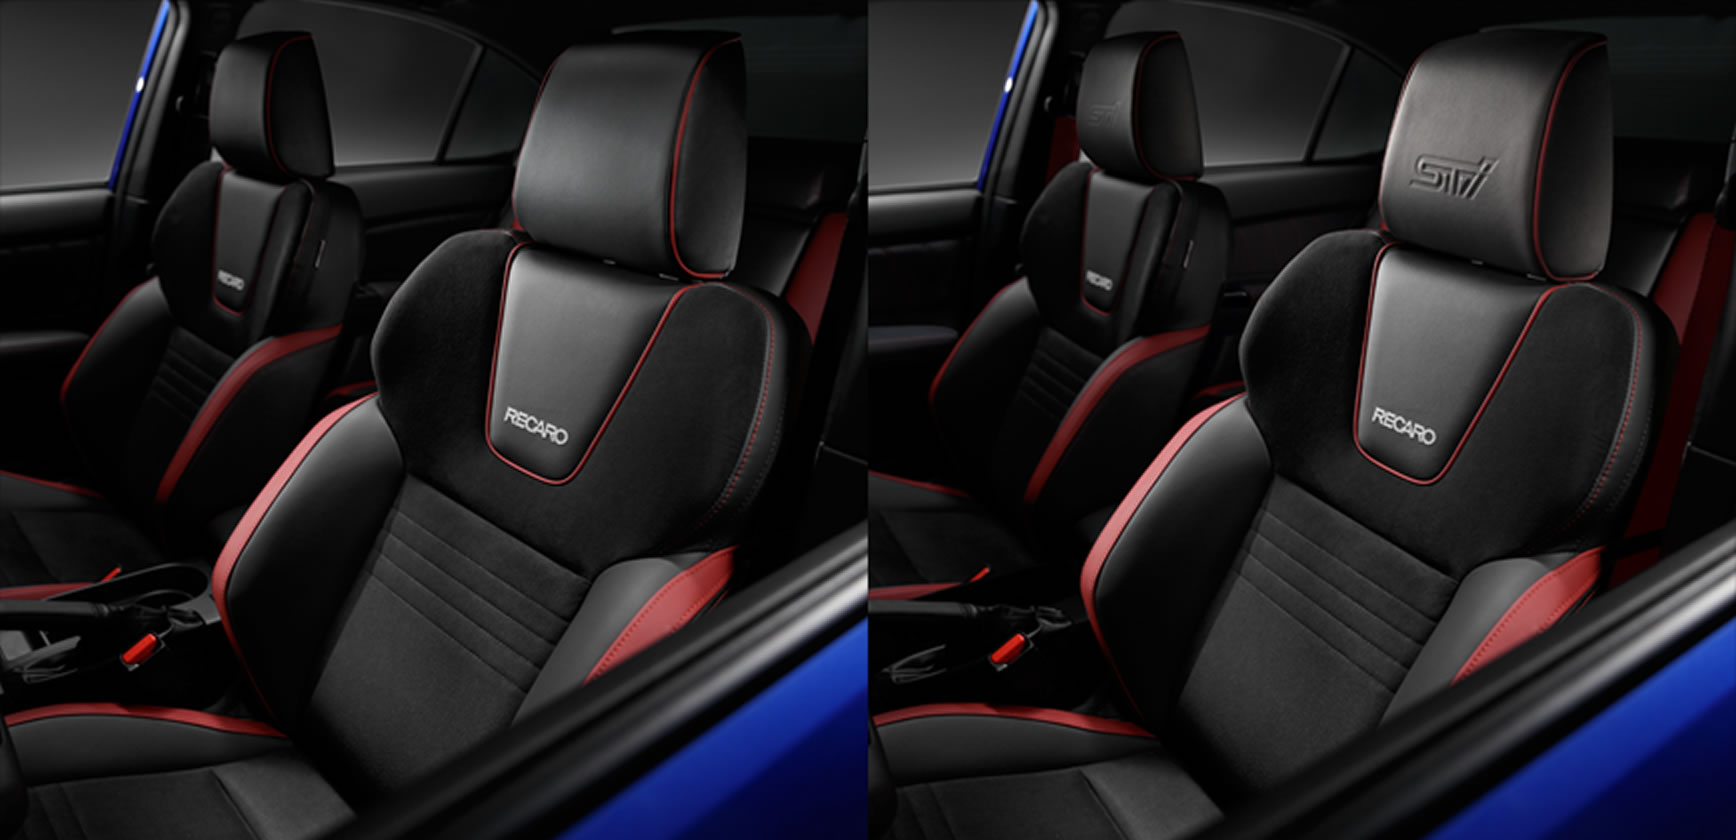 2020 Subaru WRX and WRX STI Performance-designed Front Seats